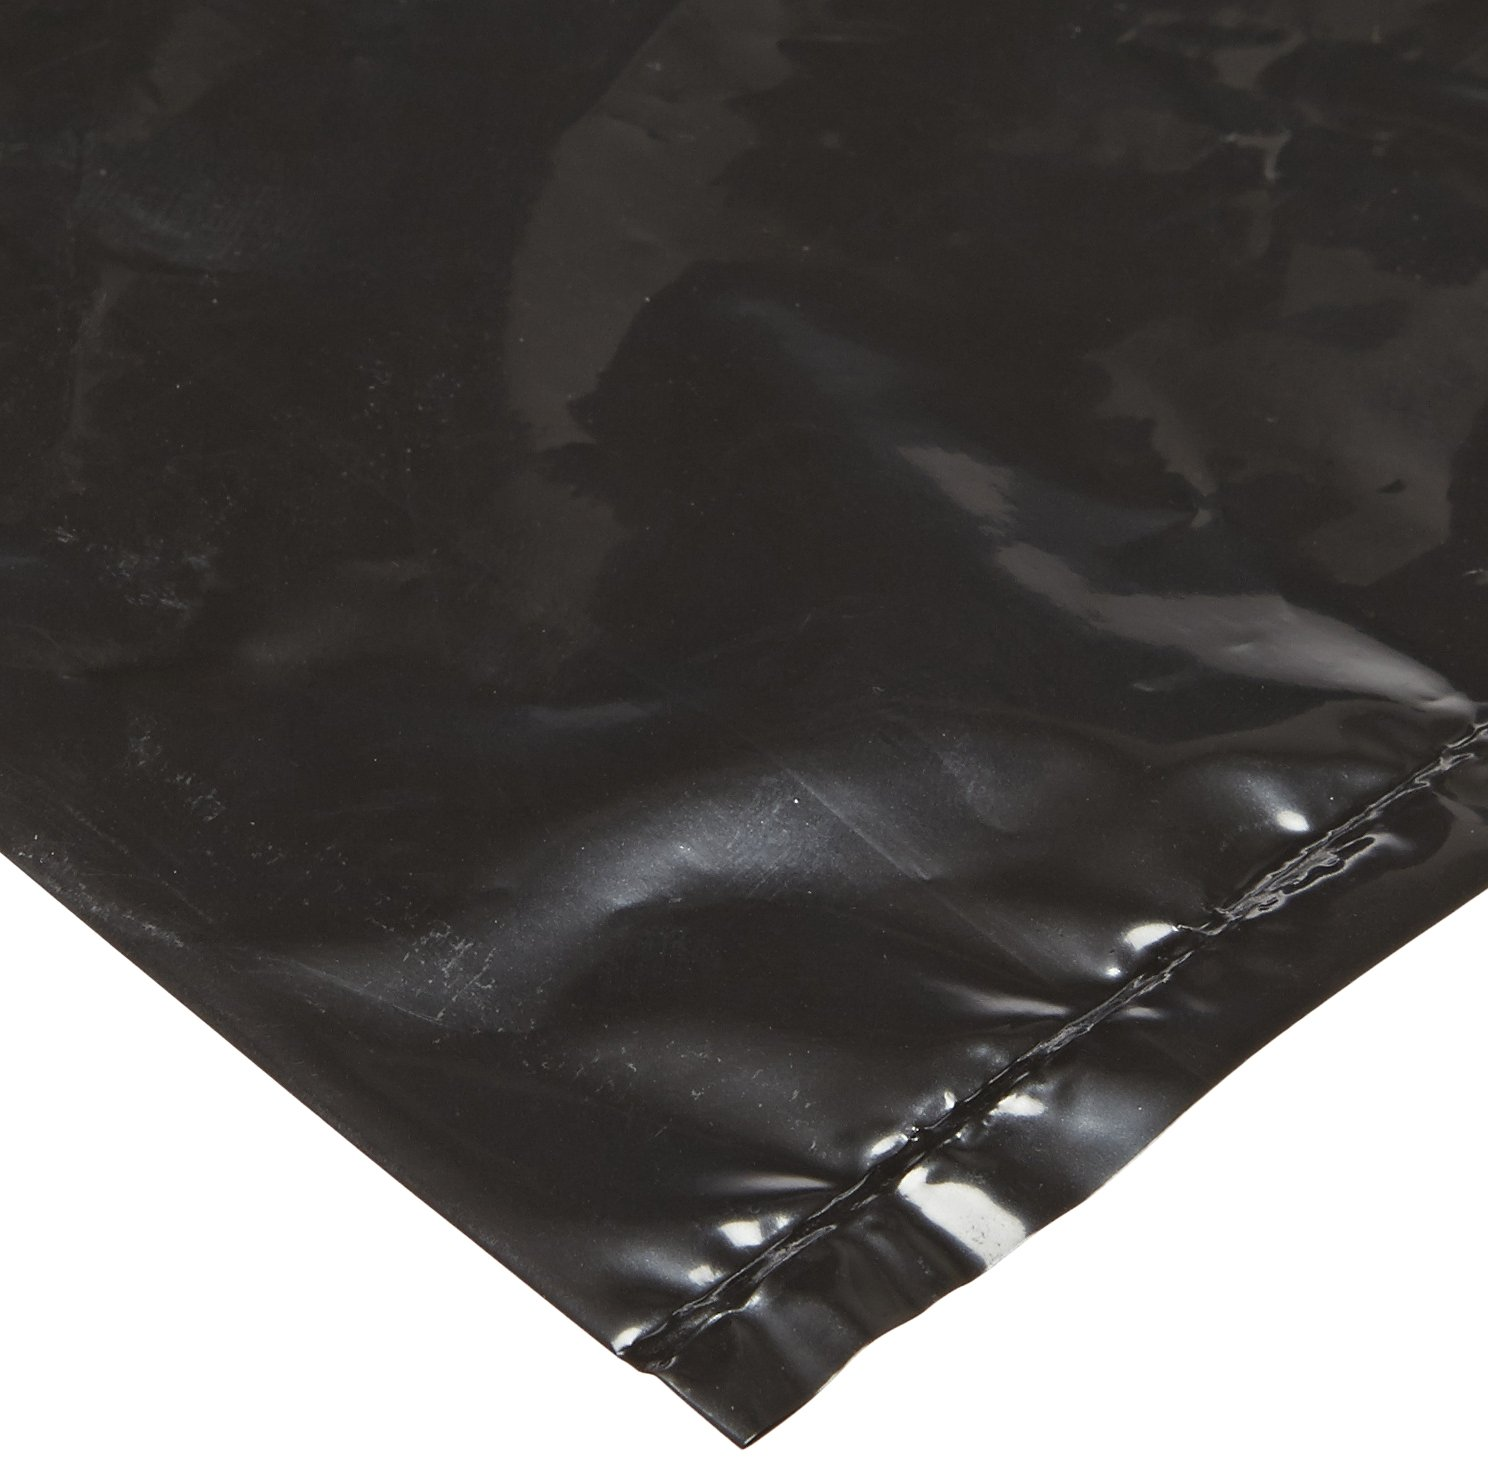 ACL Staticide 5076B Polyethylene Anti-Static Waste Basket Liner, 34'' Length x 24'' Width, Black (Pack of 50)